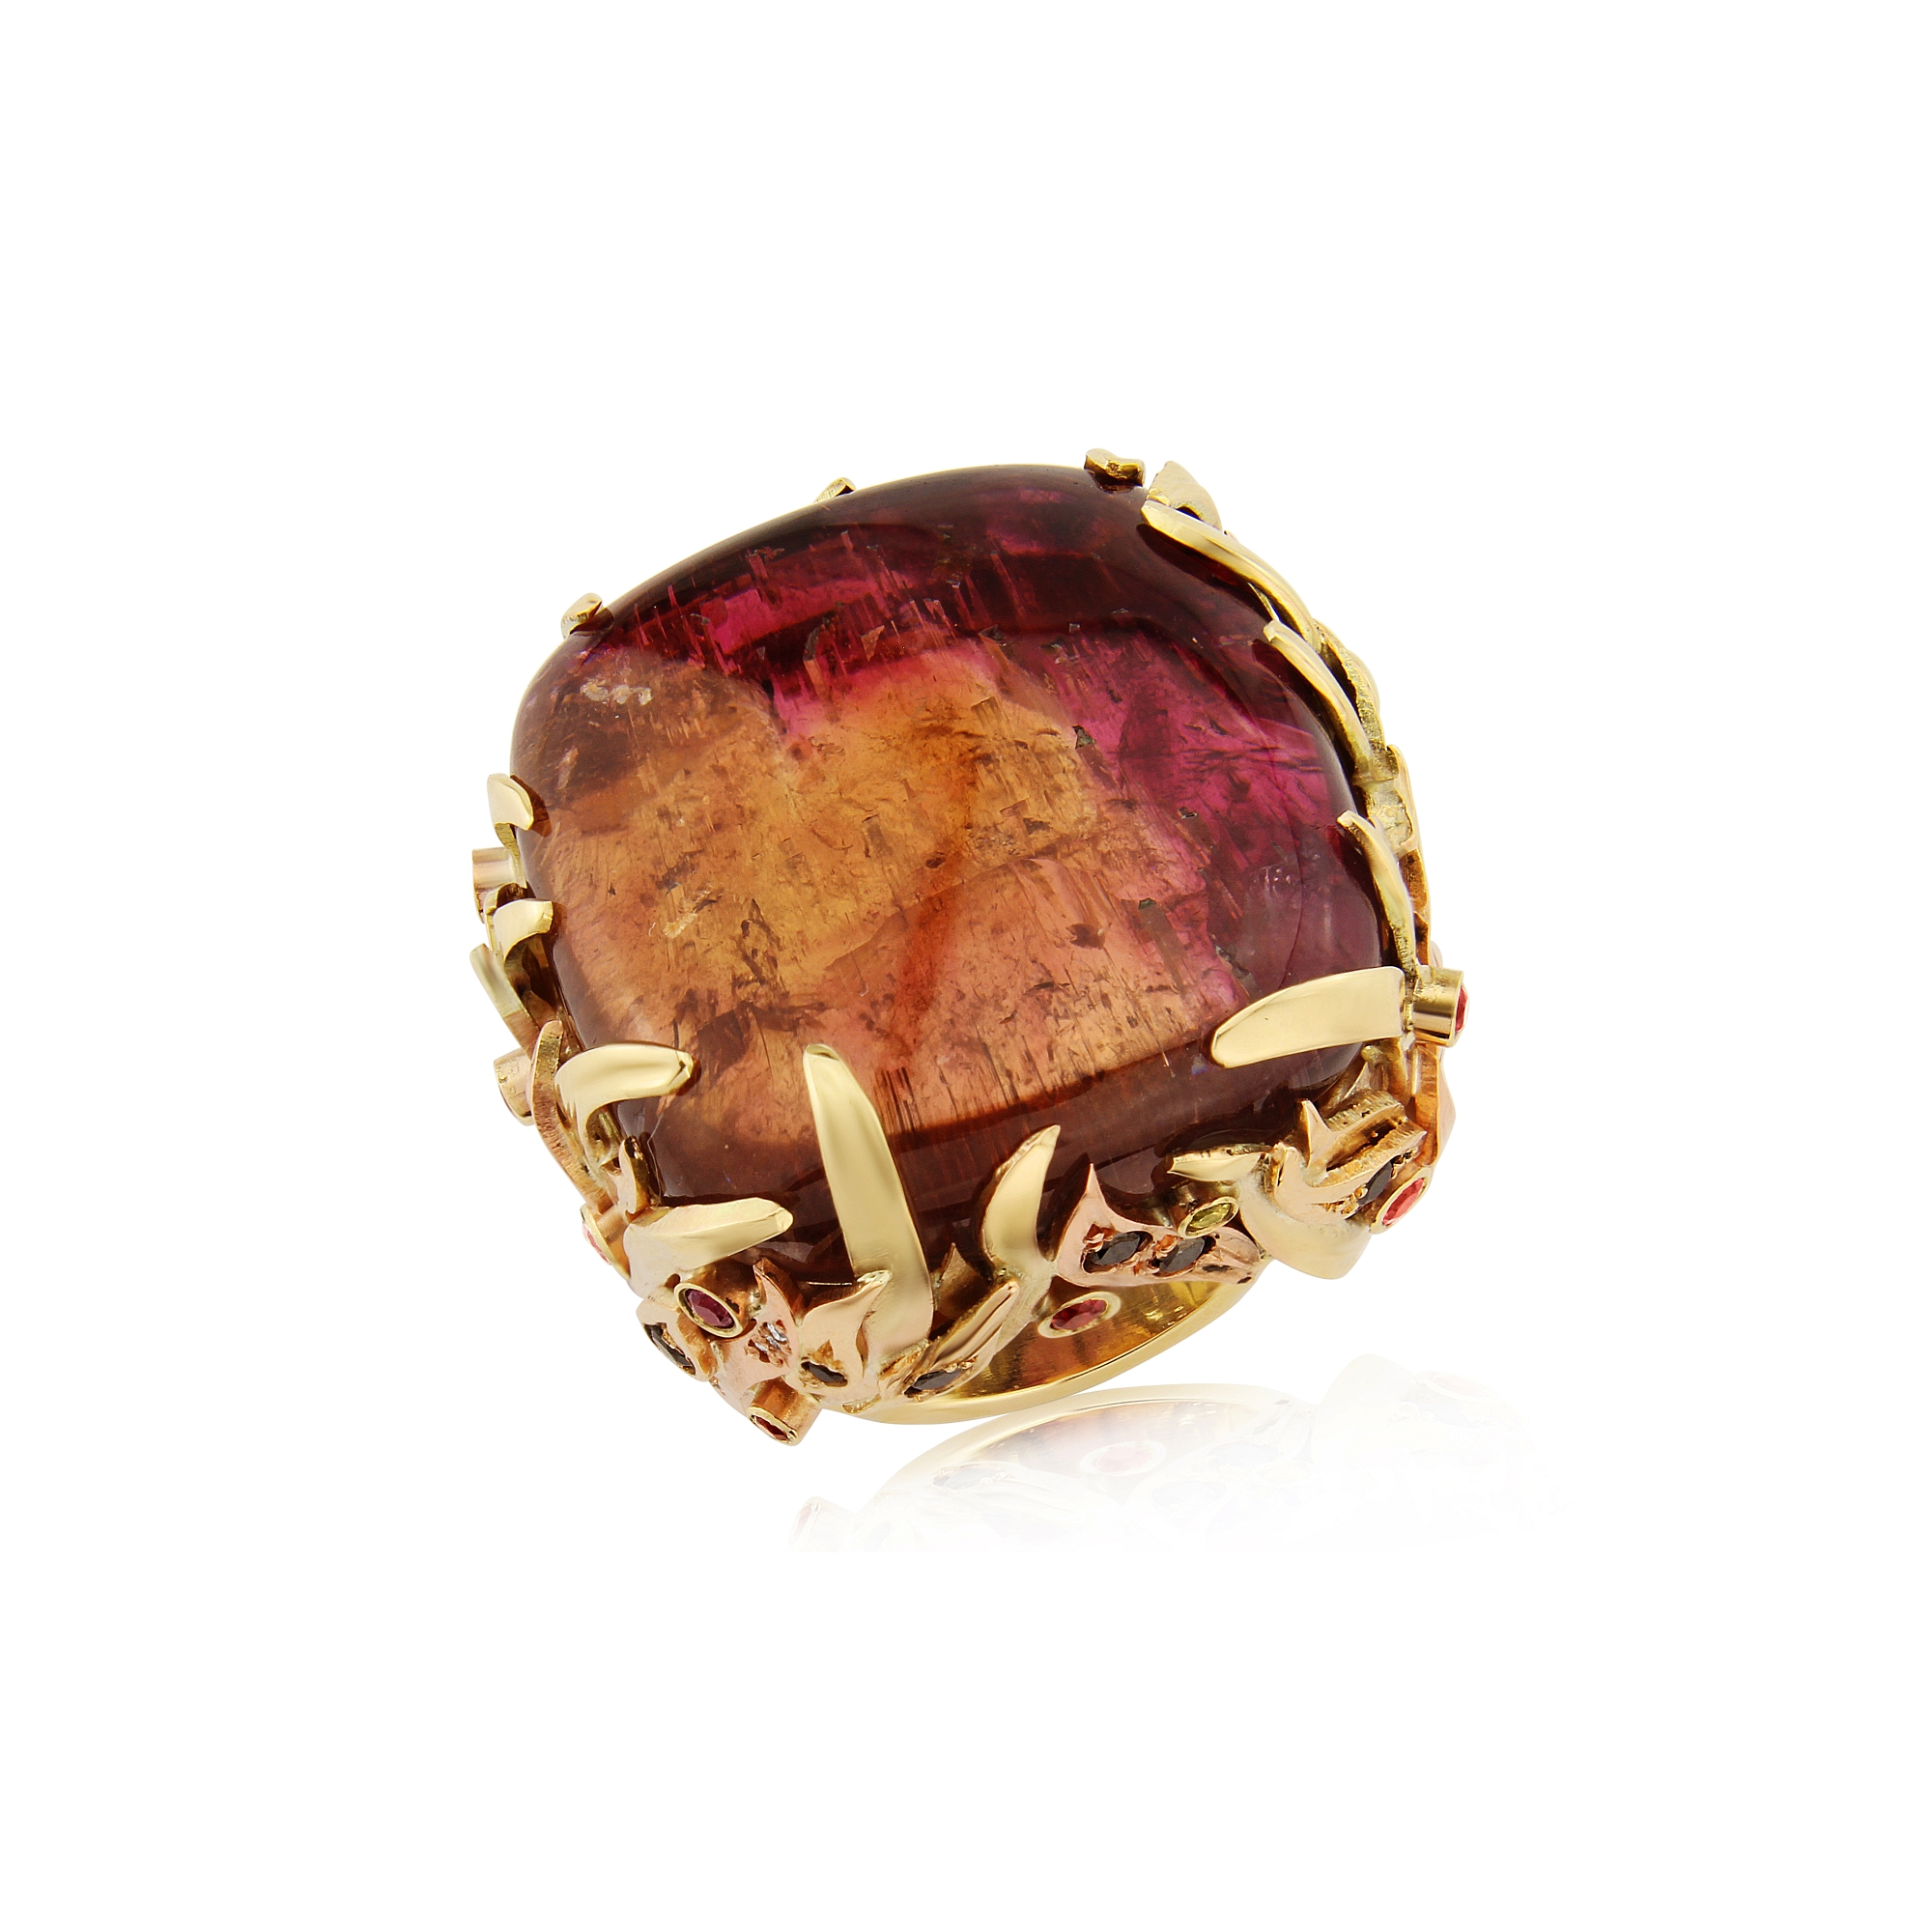 Super Fiery red/orange Tourmaline set in a large gold dress ring surrounded by coloured Sapphires, black and white Diamonds designed and hand made by Quo Vadis Jewellery.